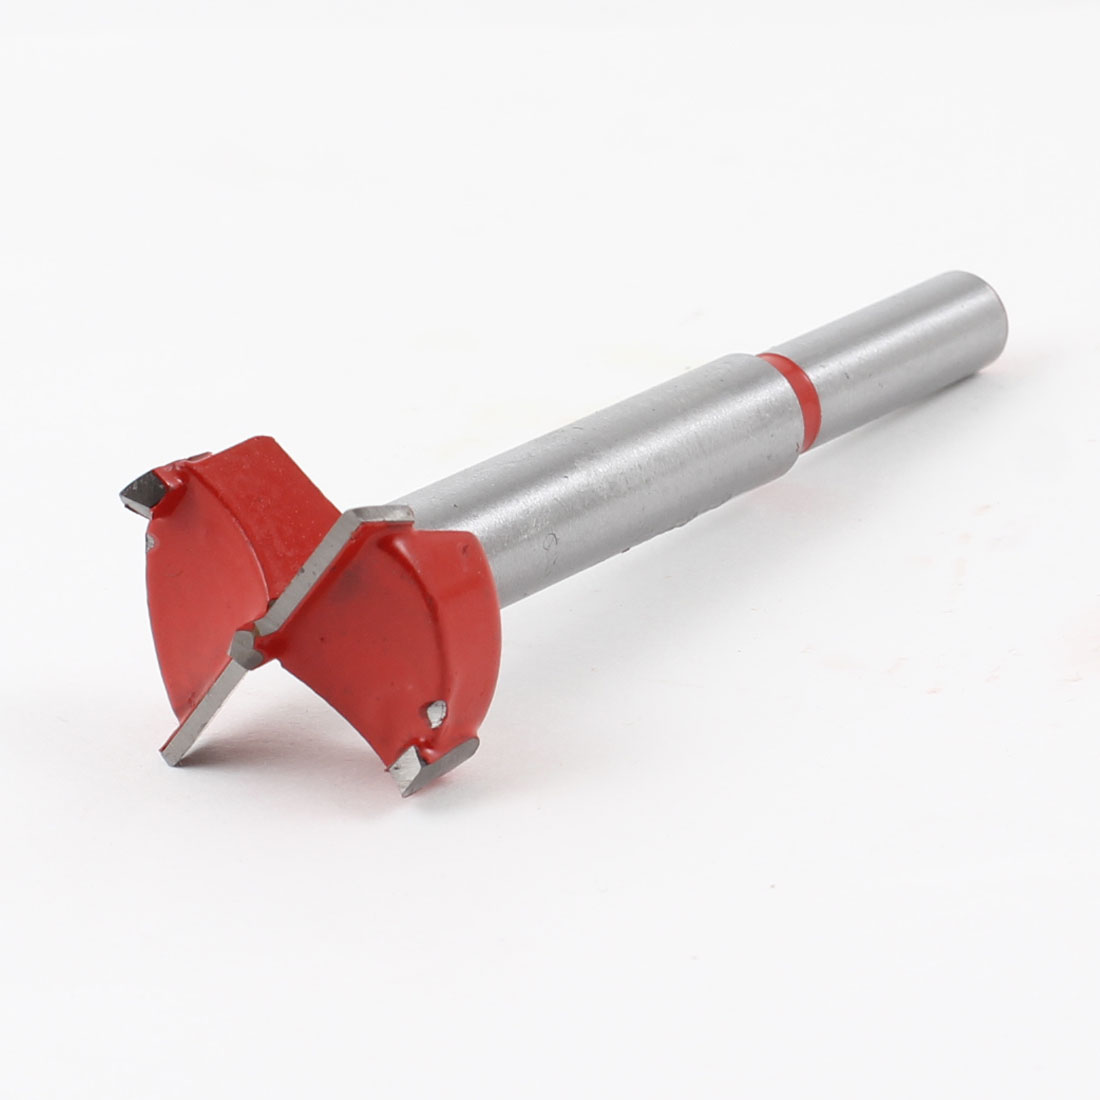 Carpenters Carbide Tipped 25mm Diameter Hinge Boring Bit Red Silver Tone